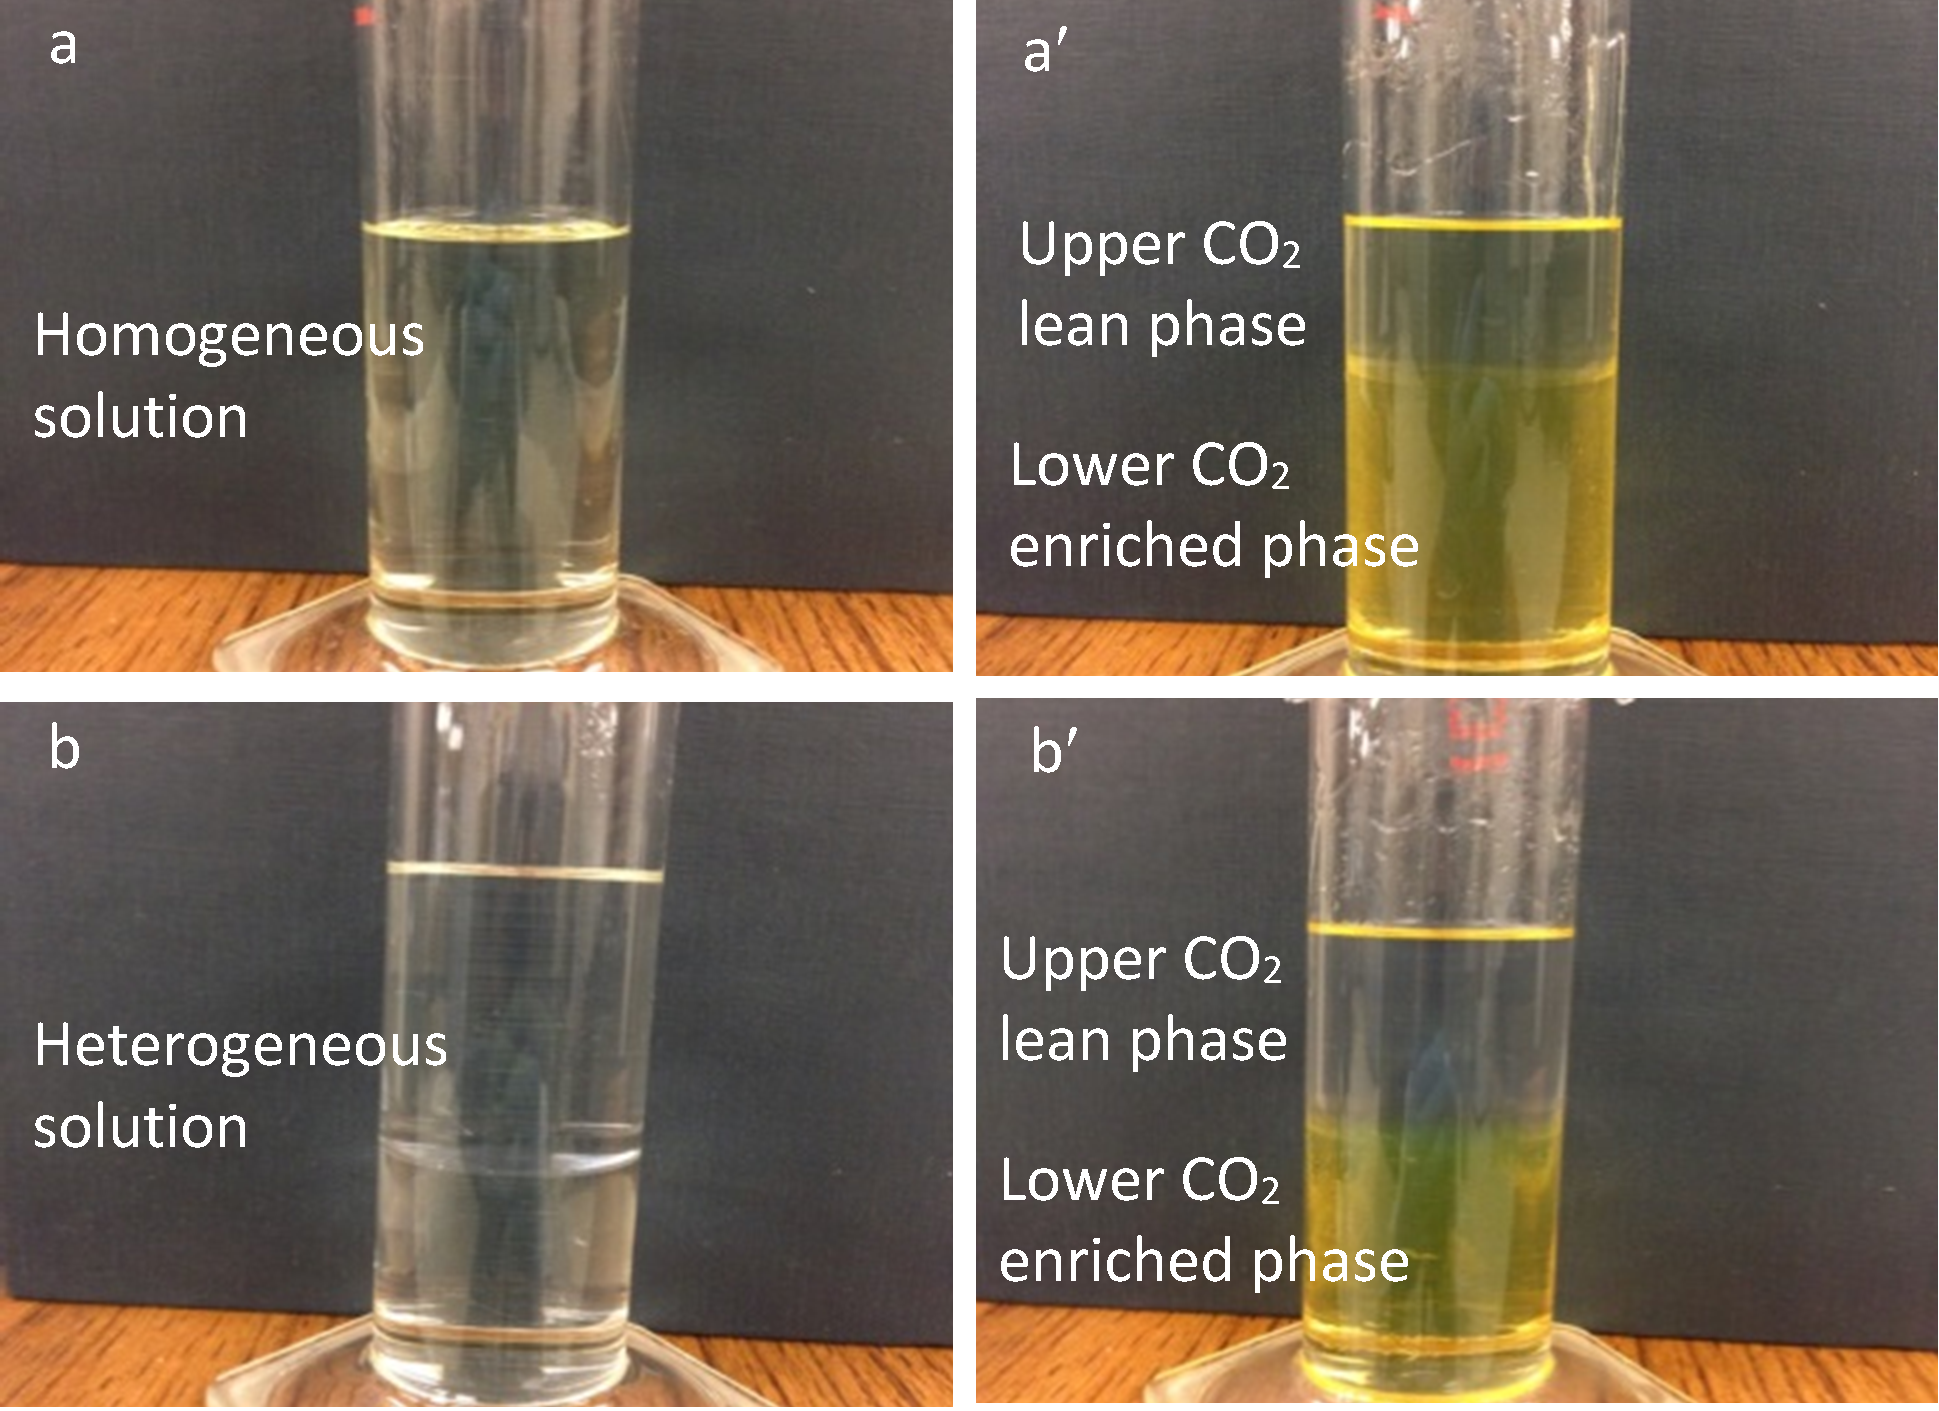 "photo a: Homogeneous solution - pale yellow liquid in a clear glass graduated cylinder. photo a prime: Upper carbon dioxide lean phase; lower carbon dioxide enriched phase - two immiscible liquids in a clear glass graduated cylinder. The upper liquid is the lean phase is clear yellow. The lower phase is CO2 enriched. The enriched phase is cloudy yellow and takes up the bottom two thirds of the liquid in the graduated cylinder.photo b: Heterogeneous solution - two immiscible liquids in a clear glass graduated cylinder. photo b prime: Upper carbon dioxide lean phase; lower carbon dioxide enriched phase - two immiscible liquids in a clear glass graduated cylinder. The upper liquid is the lean phase and is clear. The lower phase is CO2 enriched and is cloudy yellow. The enriched phase takes up the bottom half of the liquid in the graduated cylinder."" title=""photo a: Homogeneous solution - pale yellow liquid in a clear glass graduated cylinder. photo a prime: Upper carbon dioxide lean phase; lower carbon dioxide enriched phase - two immiscible liquids in a clear glass graduated cylinder. The upper liquid is the lean phase is clear yellow. The lower phase is CO2 enriched. The enriched phase is cloudy yellow and takes up the bottom two thirds of the liquid in the graduated cylinder.photo b: Heterogeneous solution - two immiscible liquids in a clear glass graduated cylinder. photo b prime: Upper carbon dioxide lean phase; lower carbon dioxide enriched phase - two immiscible liquids in a clear glass graduated cylinder. The upper liquid is the lean phase and is clear. The lower phase is CO2 enriched and is cloudy yellow. The enriched phase takes up the bottom half of the liquid in the graduated cylinder."